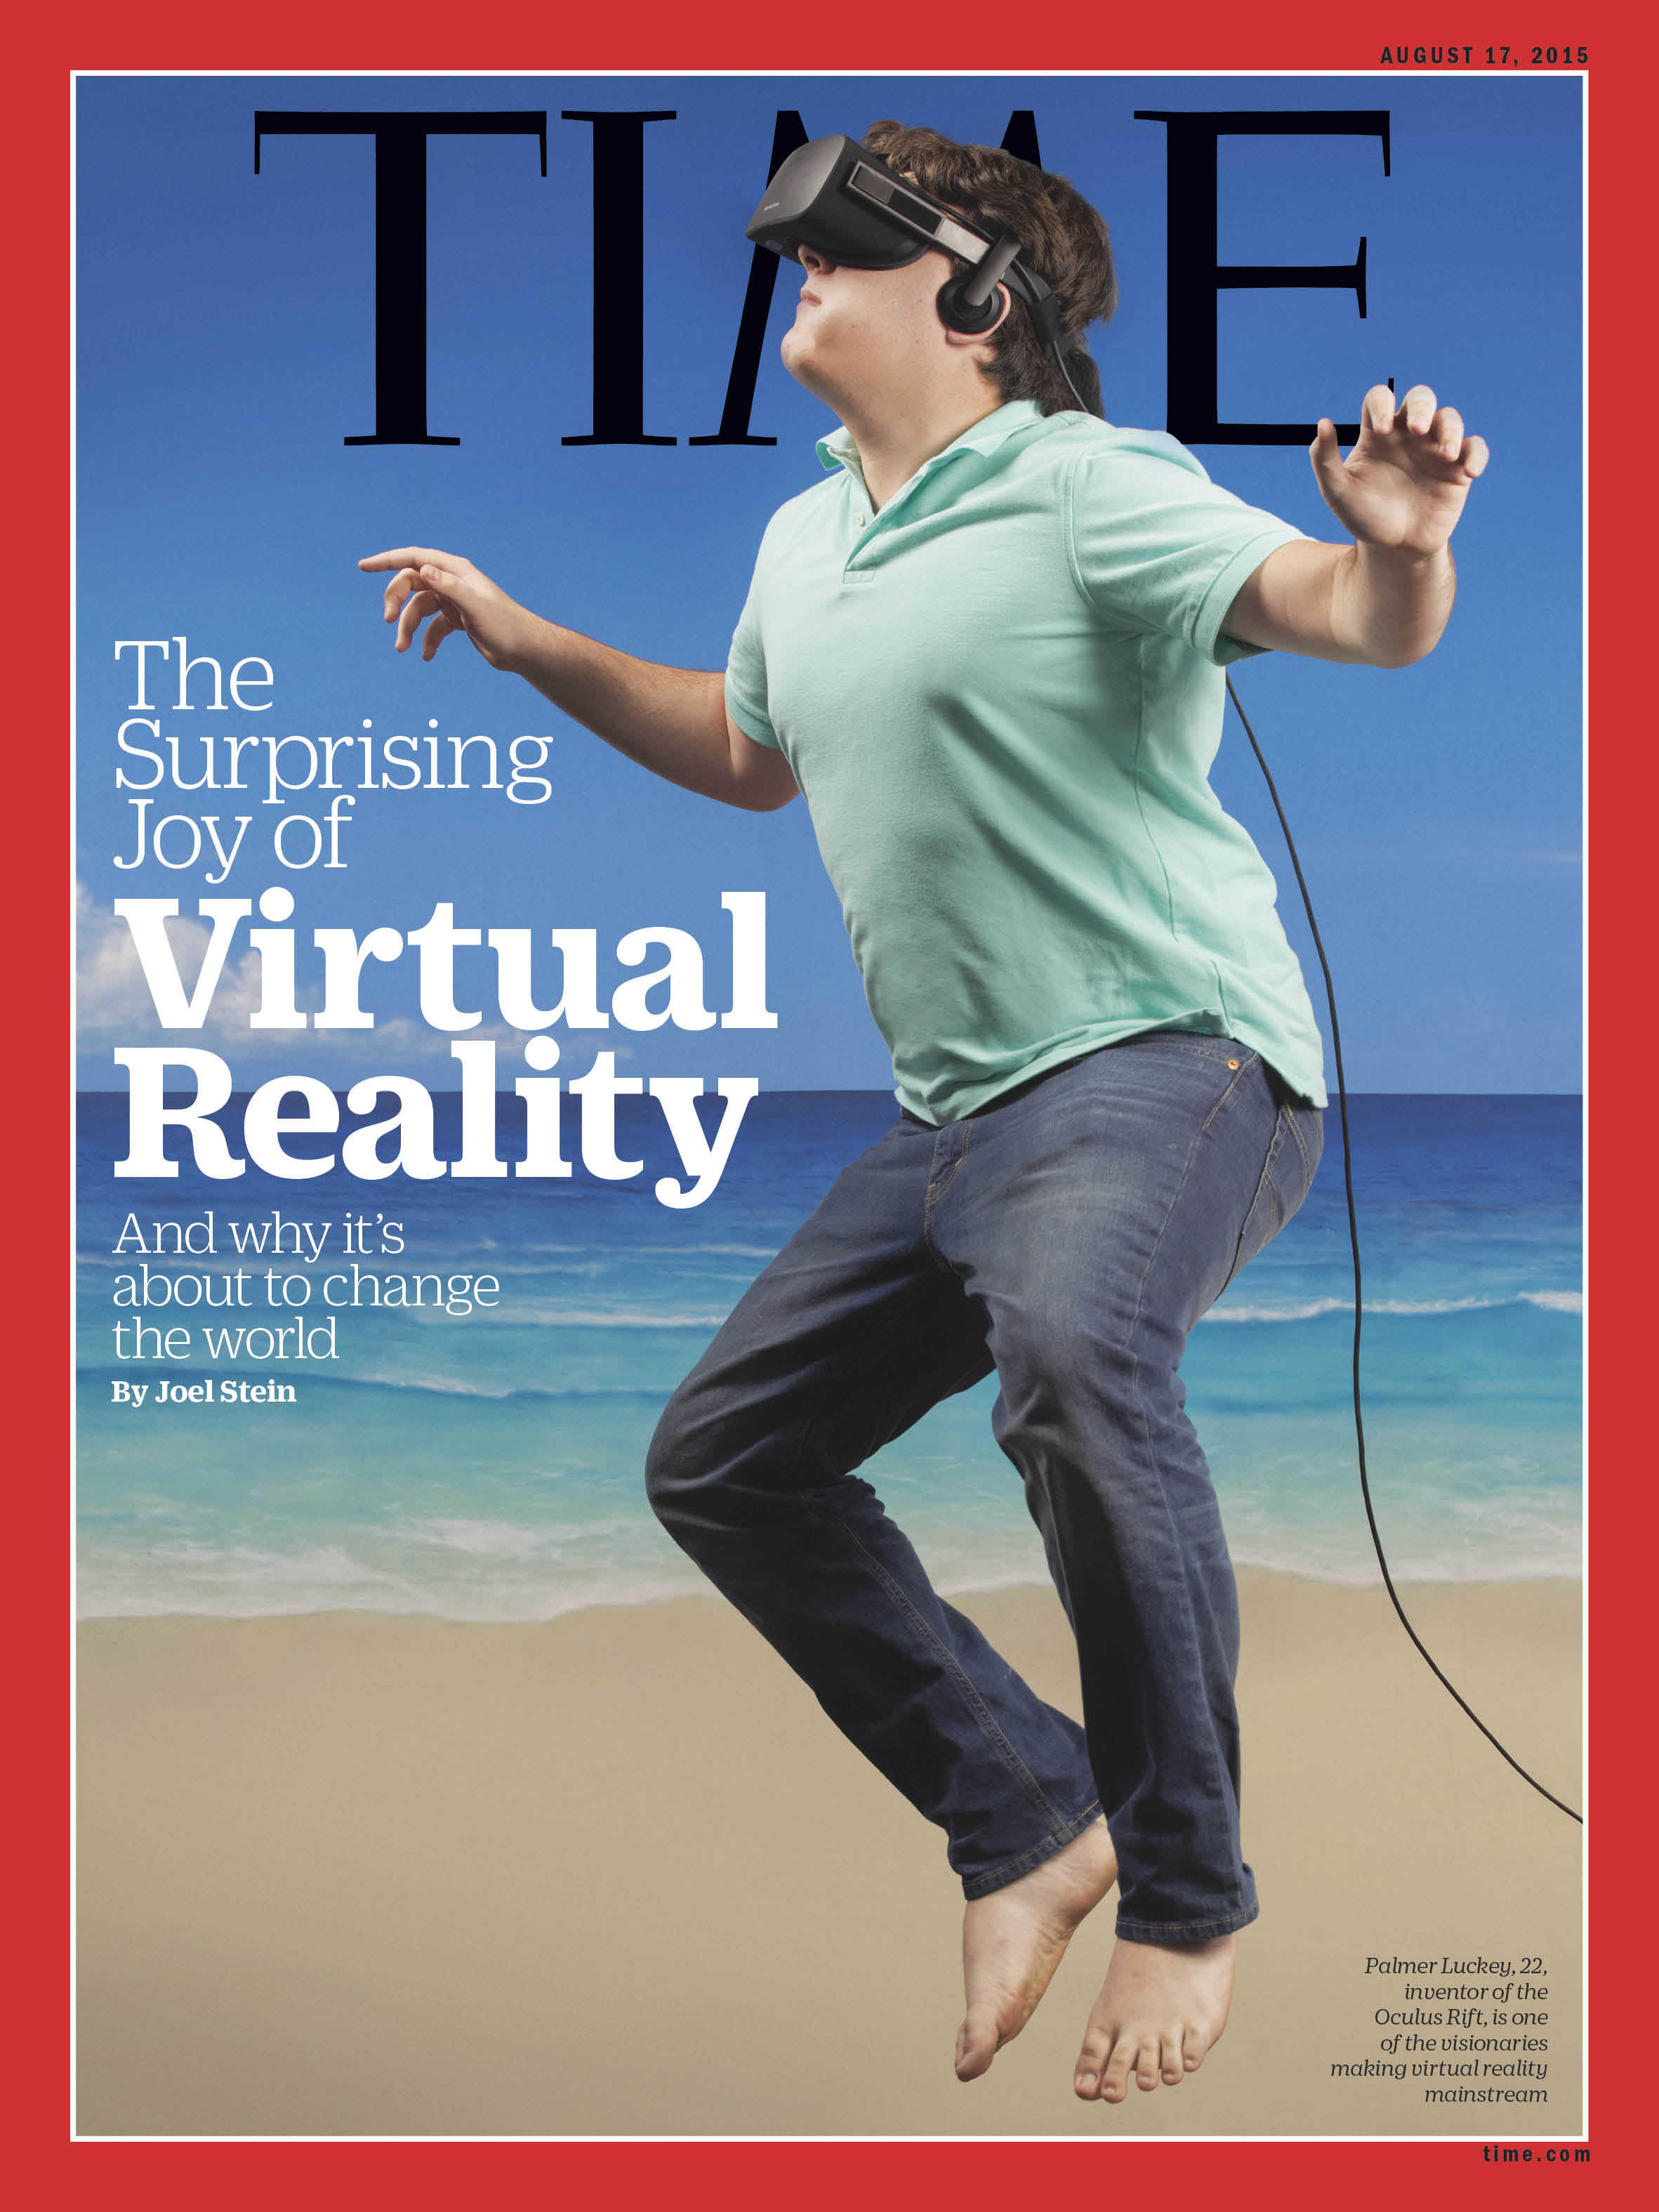 Palmer Luckey, 22, inventor of the Oculus Rift, is one of the visionaries making virtual reality mainstream